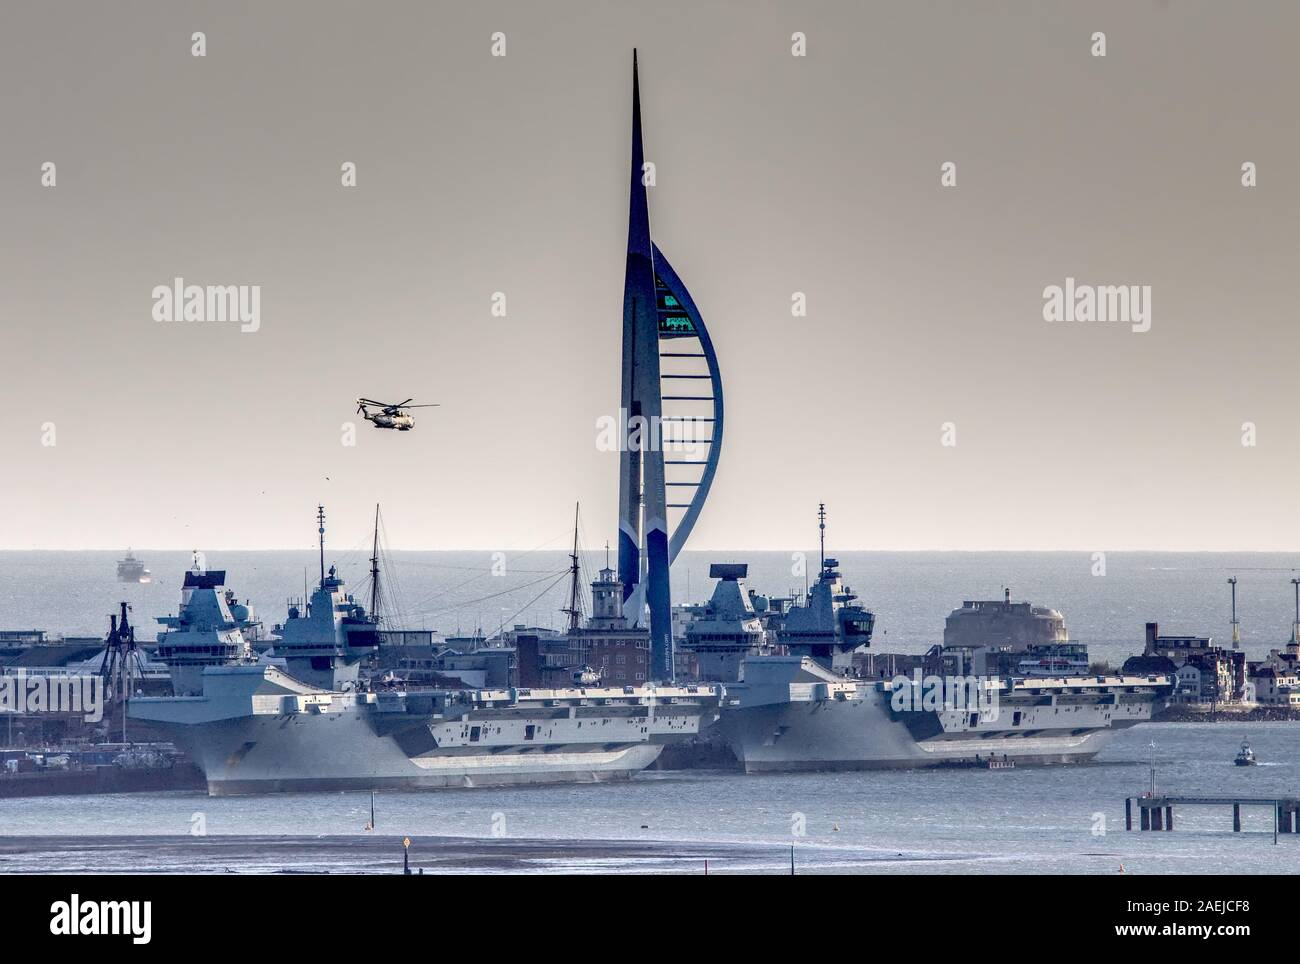 AJAXNETPHOTO. 9th December, 2019. PORTSMOUTH, ENGLAND. - Royal Navy's Sister Ships - HMS Queen Elizabeth (left) docked ahead of sister-ship HMS Prince of Wales today at Portsmouth Naval Base after returning from aviation exercises off the East Coast of the USA with one faulty Lightning F35B fighter jet parked on deck. 